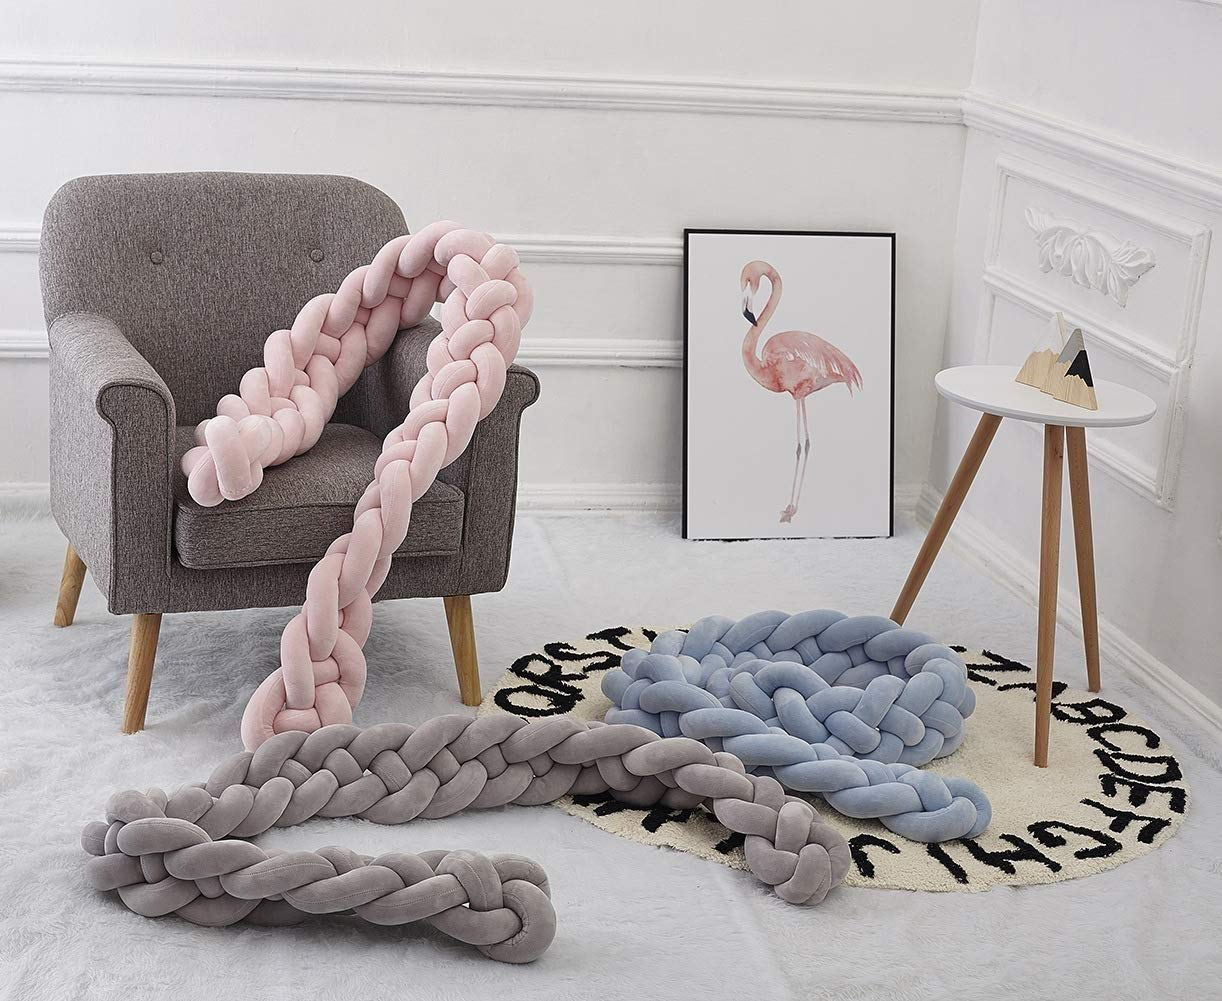 Bed Bumpers Handmade Braided Cot Bumper Baby Head Guard Bumper Knot Braid Pillow Cushion Decorative Pillow for Baby Nursery Crib Bedding-Gray Size : 4M